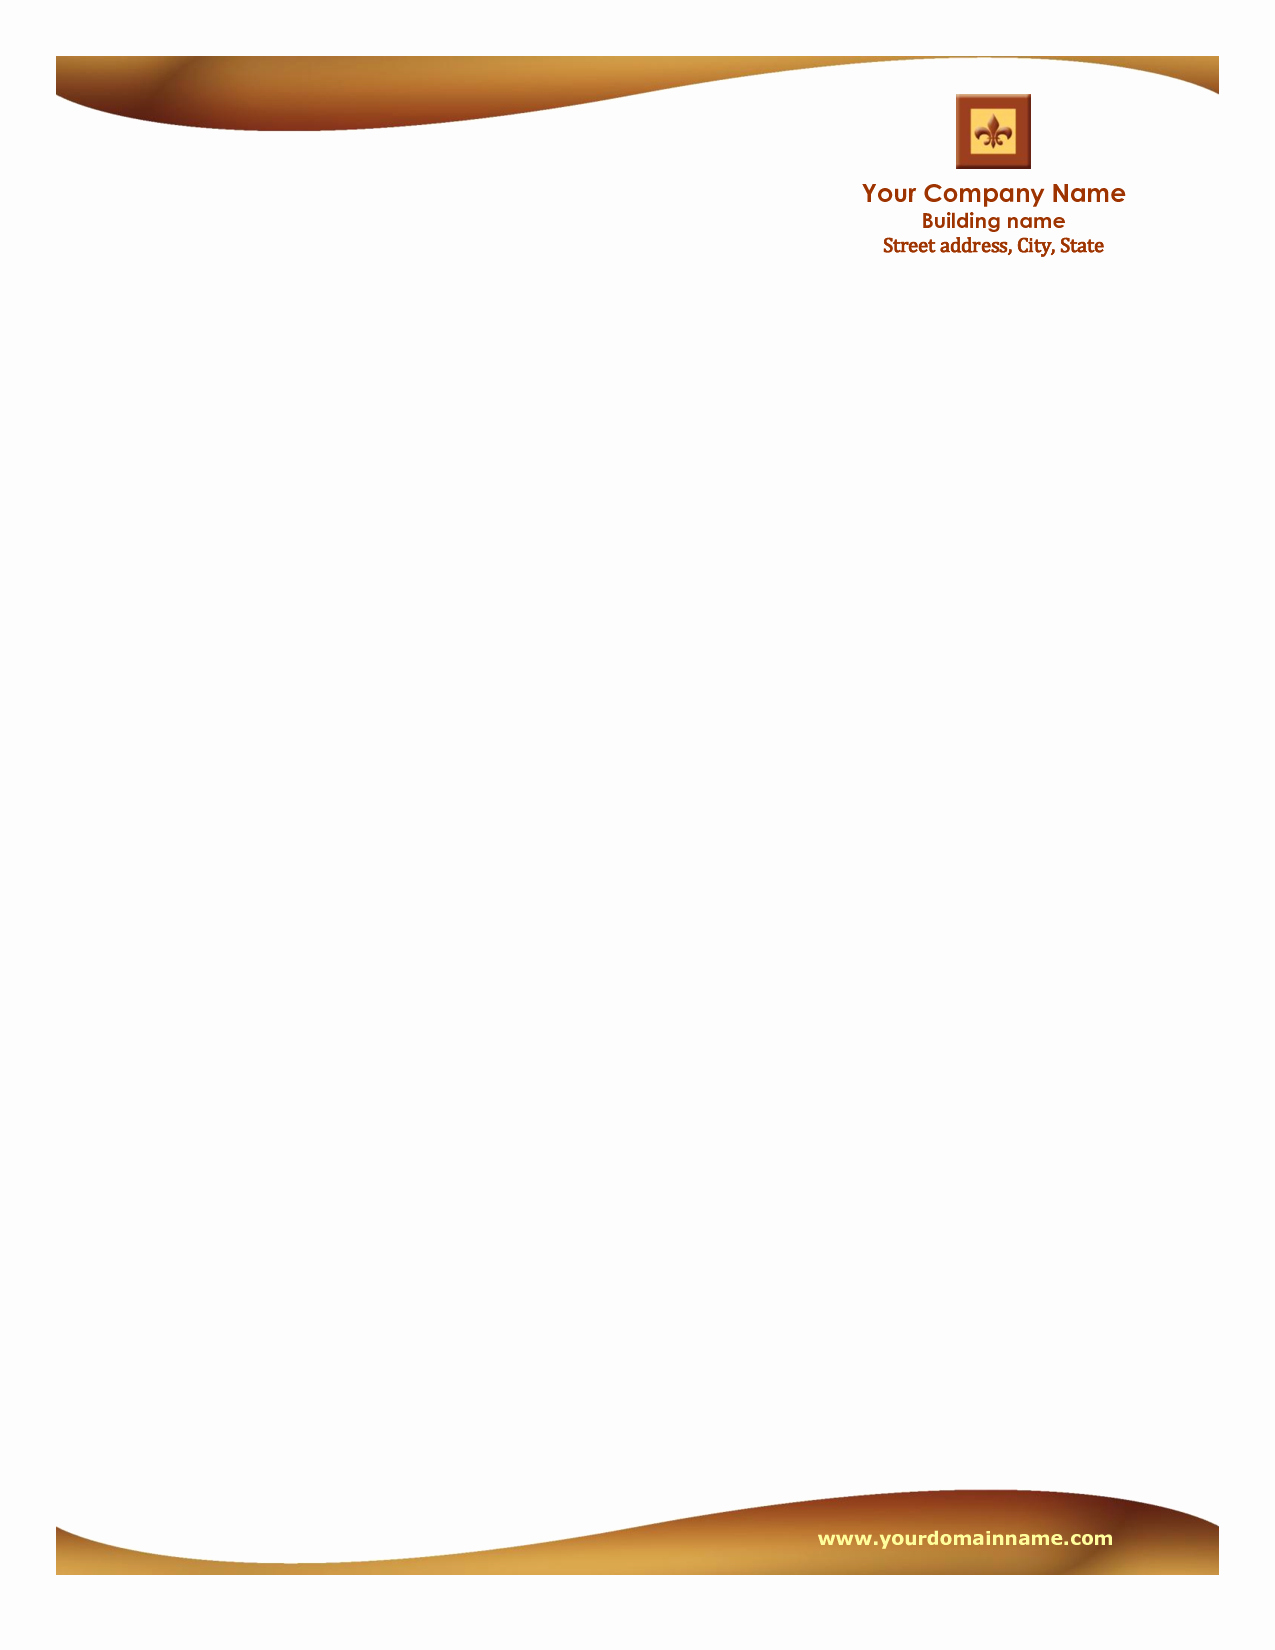 Free Downloadable Templates for Word New Letterhead Templates Free